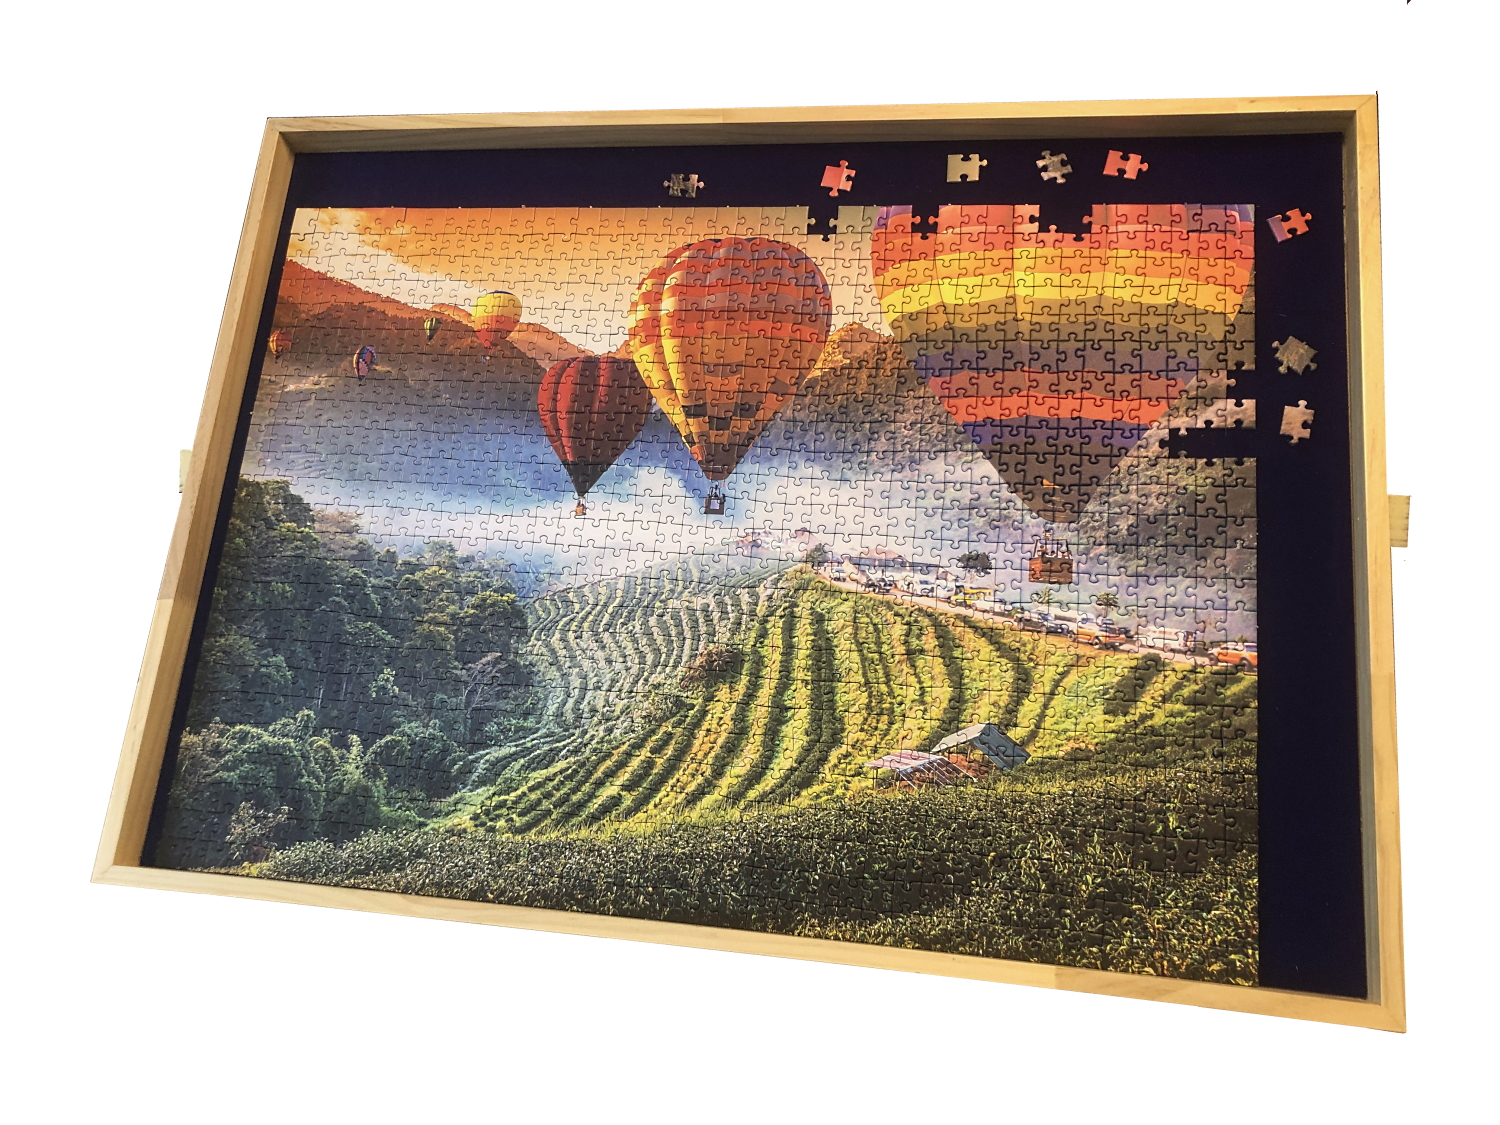 http://data.my-puzzle.fr/jig-and-puz.185/jig-puz-puzzle-table-100-a-1500-pieces.83071-2.fs.jpg